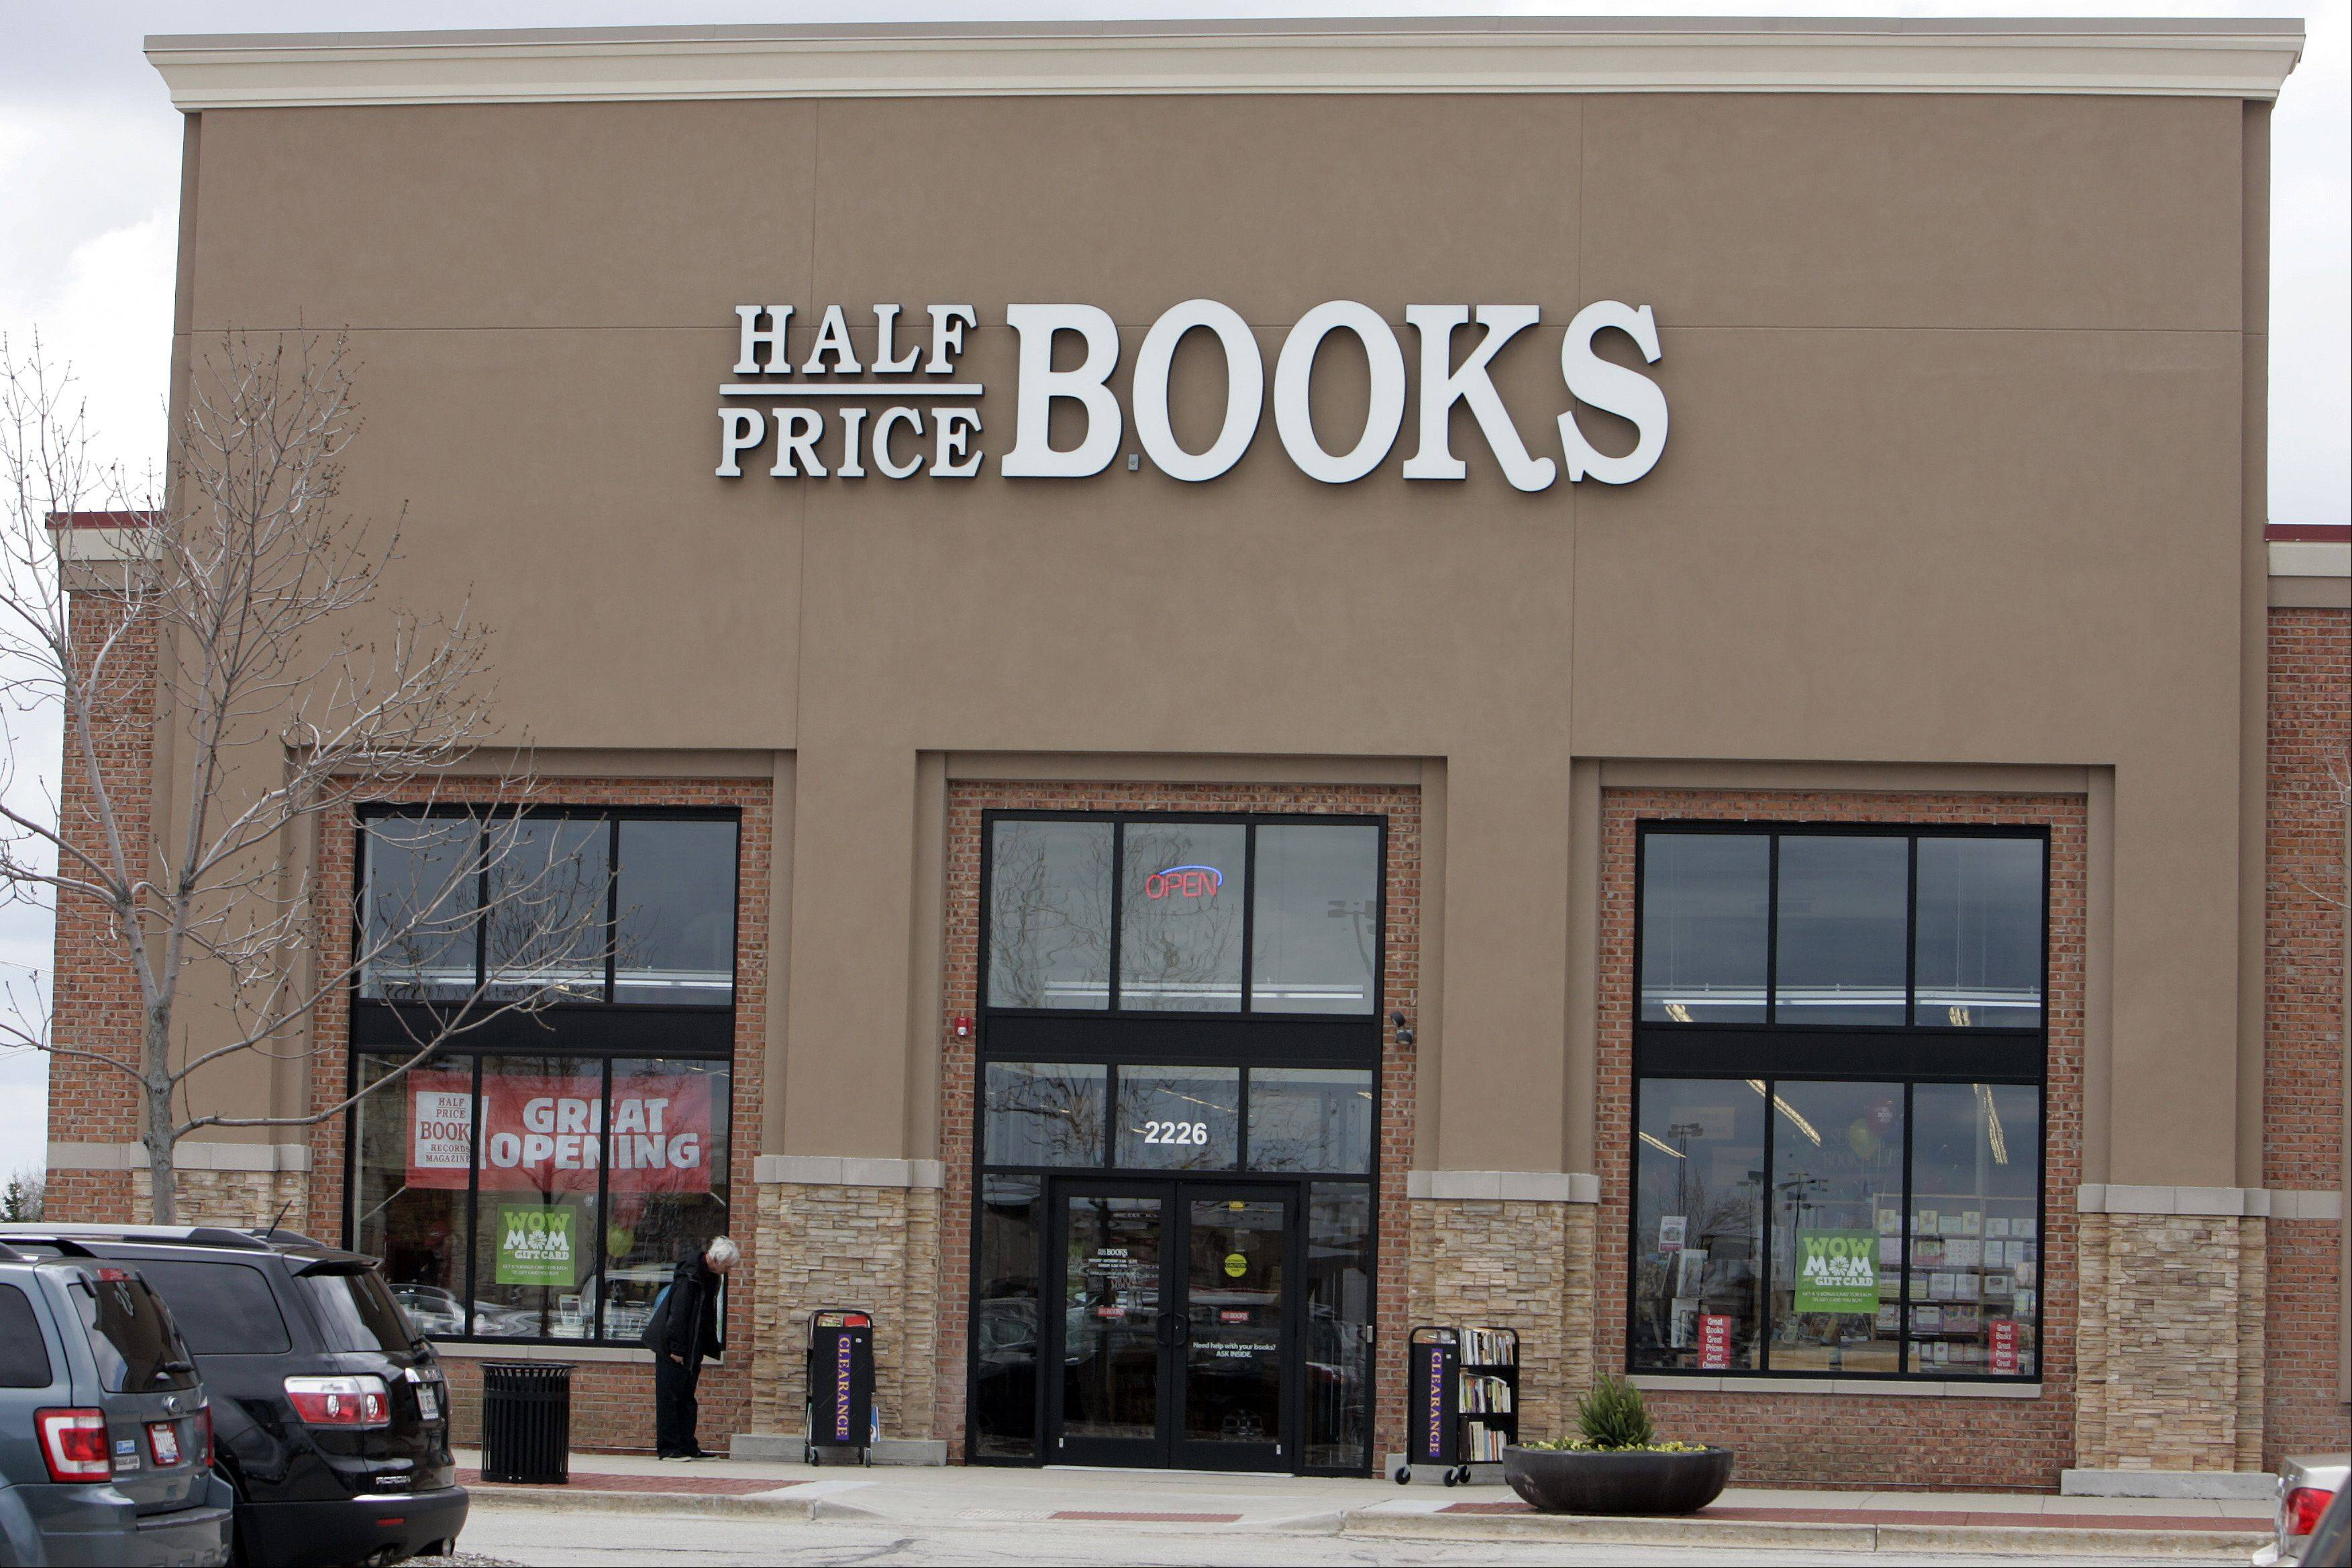 Half Price Books recently held a grand opening at Algonquin Commons. The store is inside the former Borders location.